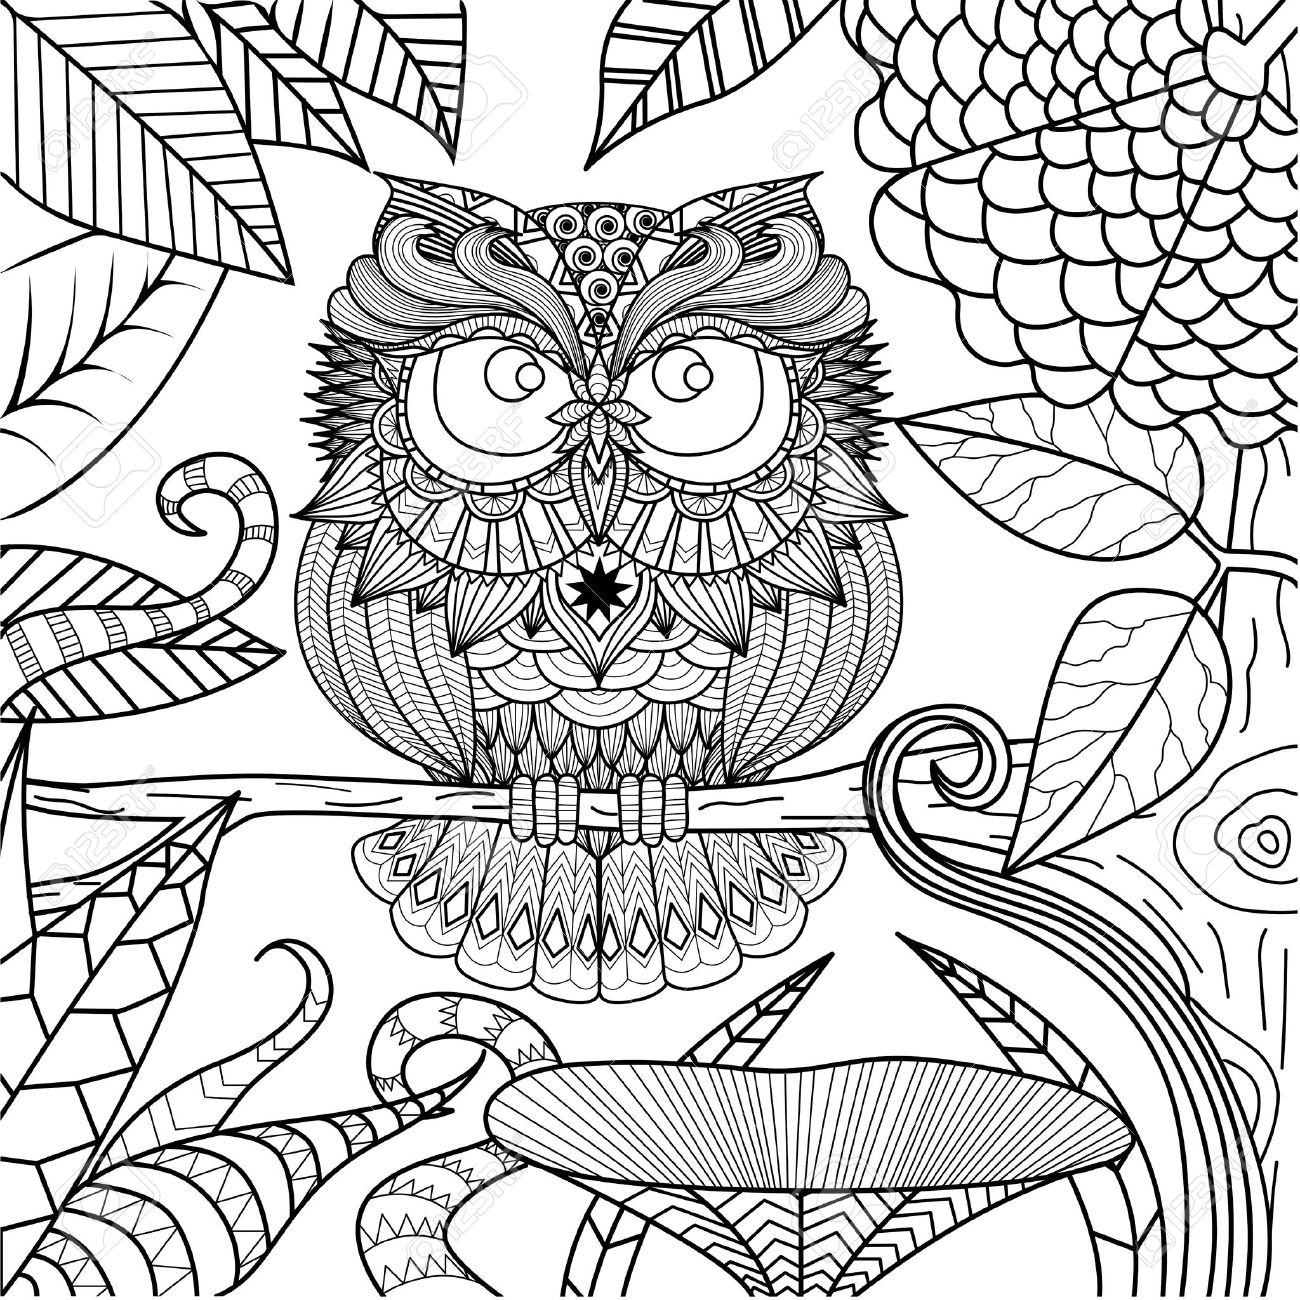 owl drawing for coloring book royalty free cliparts vectors and